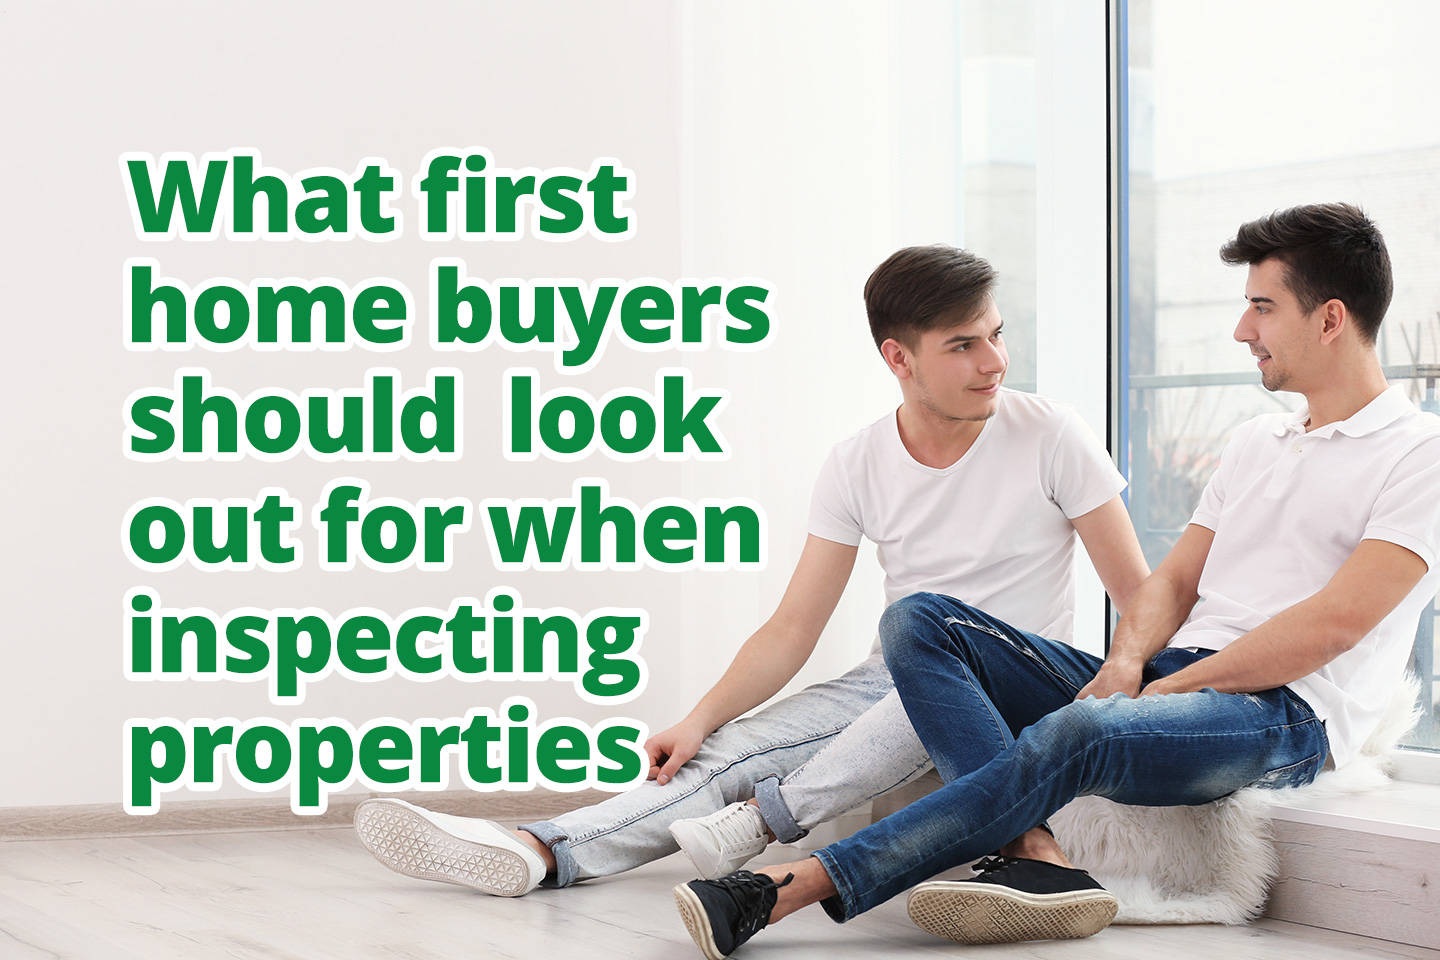 What first home buyers should look out for when inspecting properties